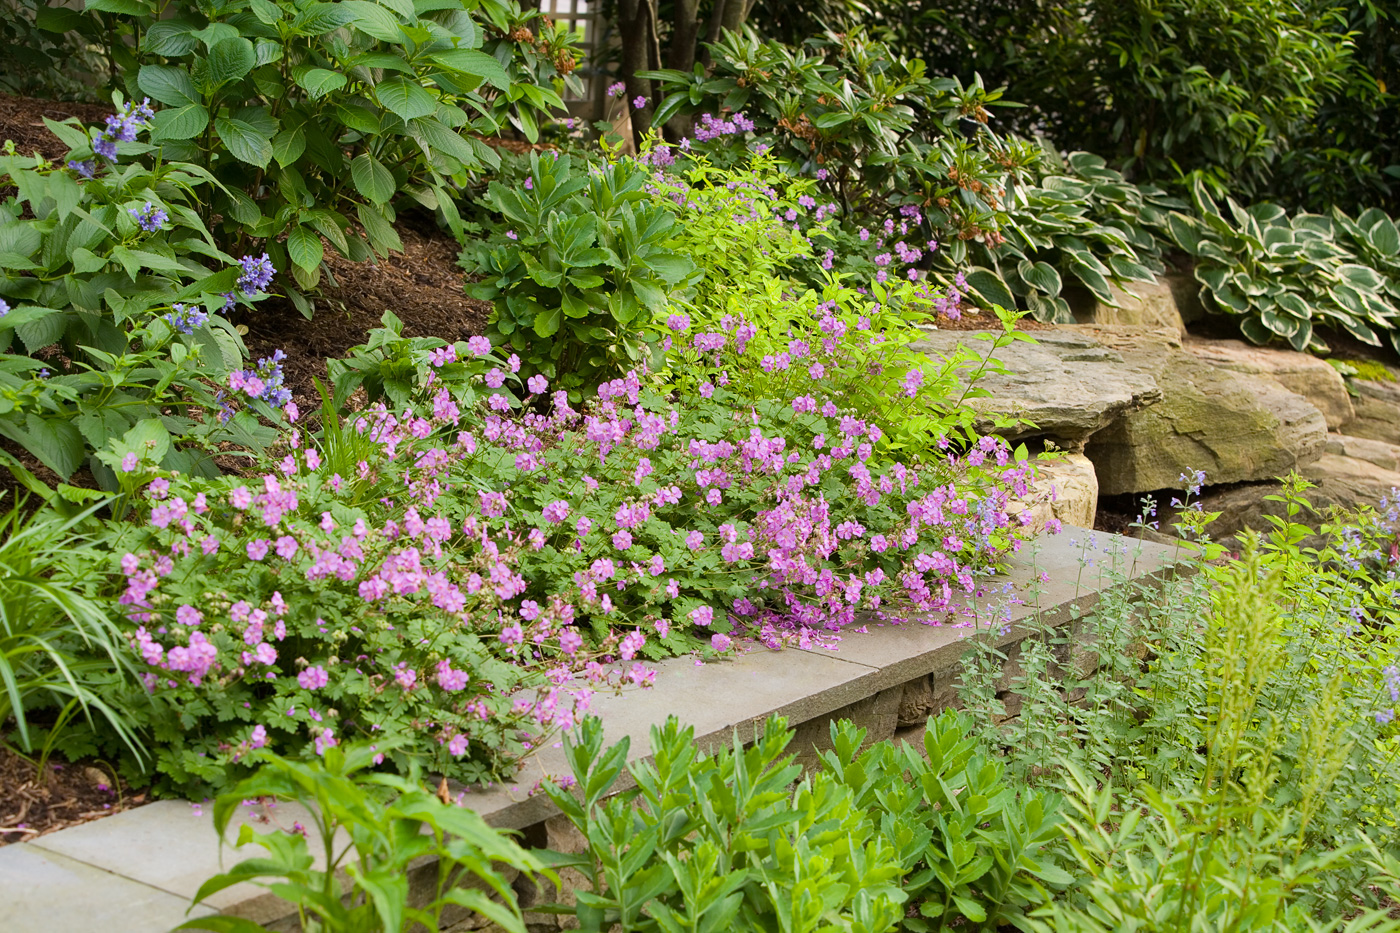 Landscape design perennial garden tips for growing a for Perennial garden design